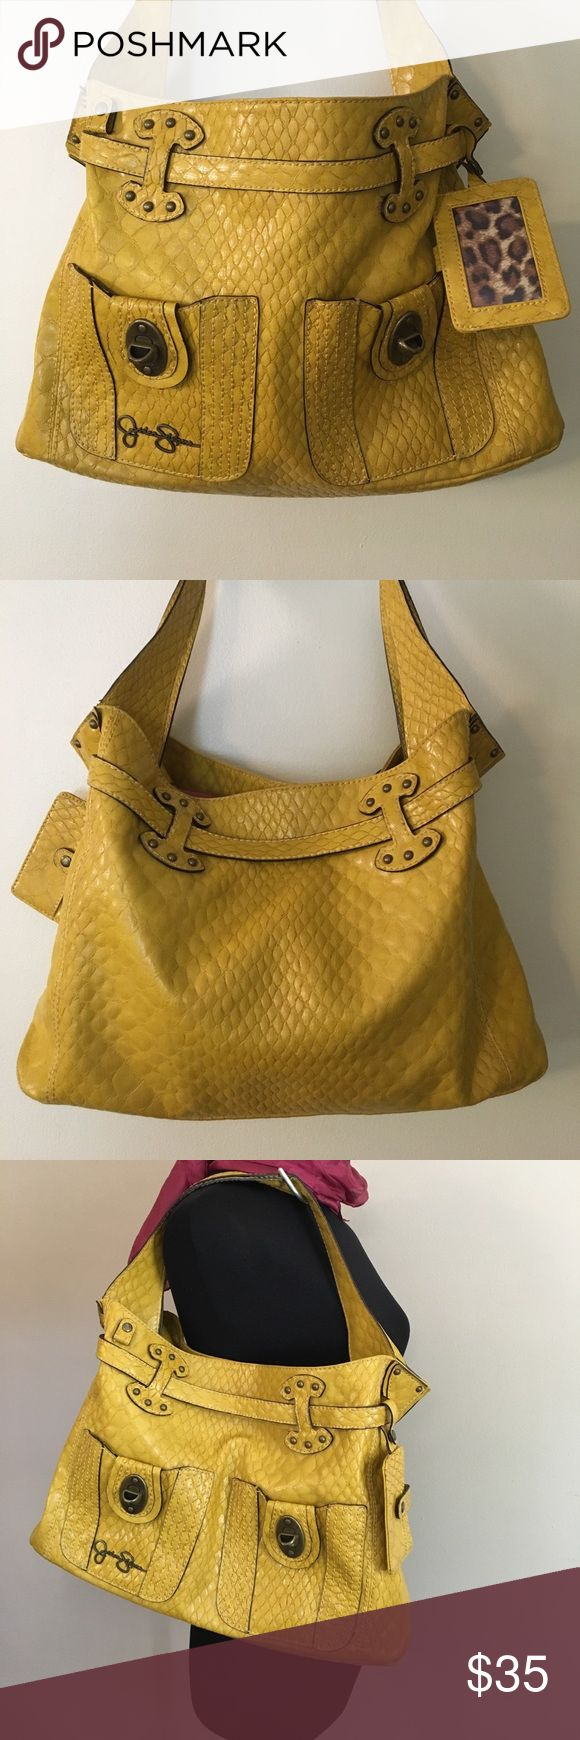 "Jessica Simpson Faux Python Yellow Hobo! Big fun! Unique Jessica Simpson hobo bag. Base 16"" x 4""; H 11"". Strap to top 9"". Leopard print inside, so cute and clean clean clean! You'll love it. 💛🐊💛 Jessica Simpson Bags Shoulder Bags"